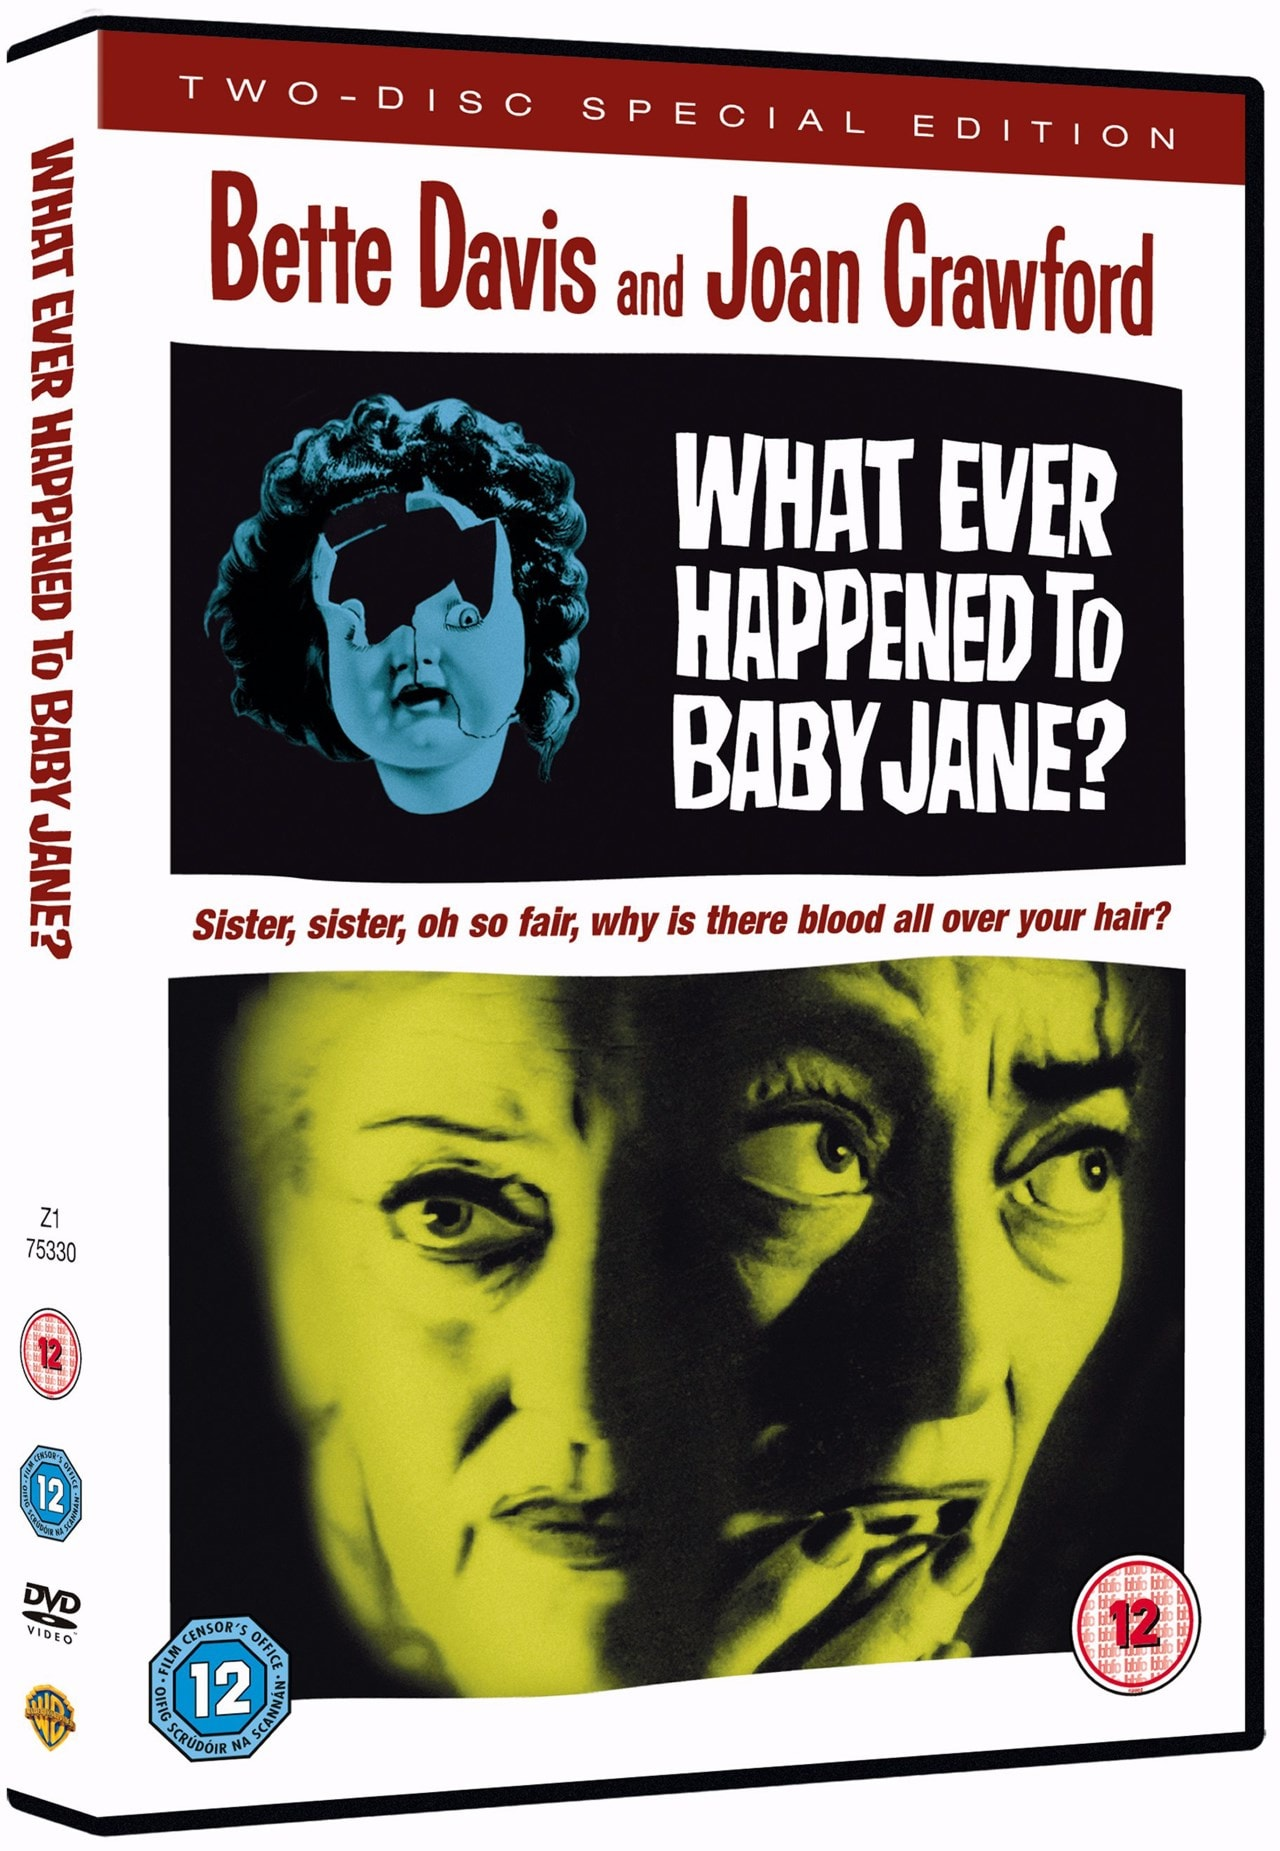 Whatever Happened to Baby Jane? - 2